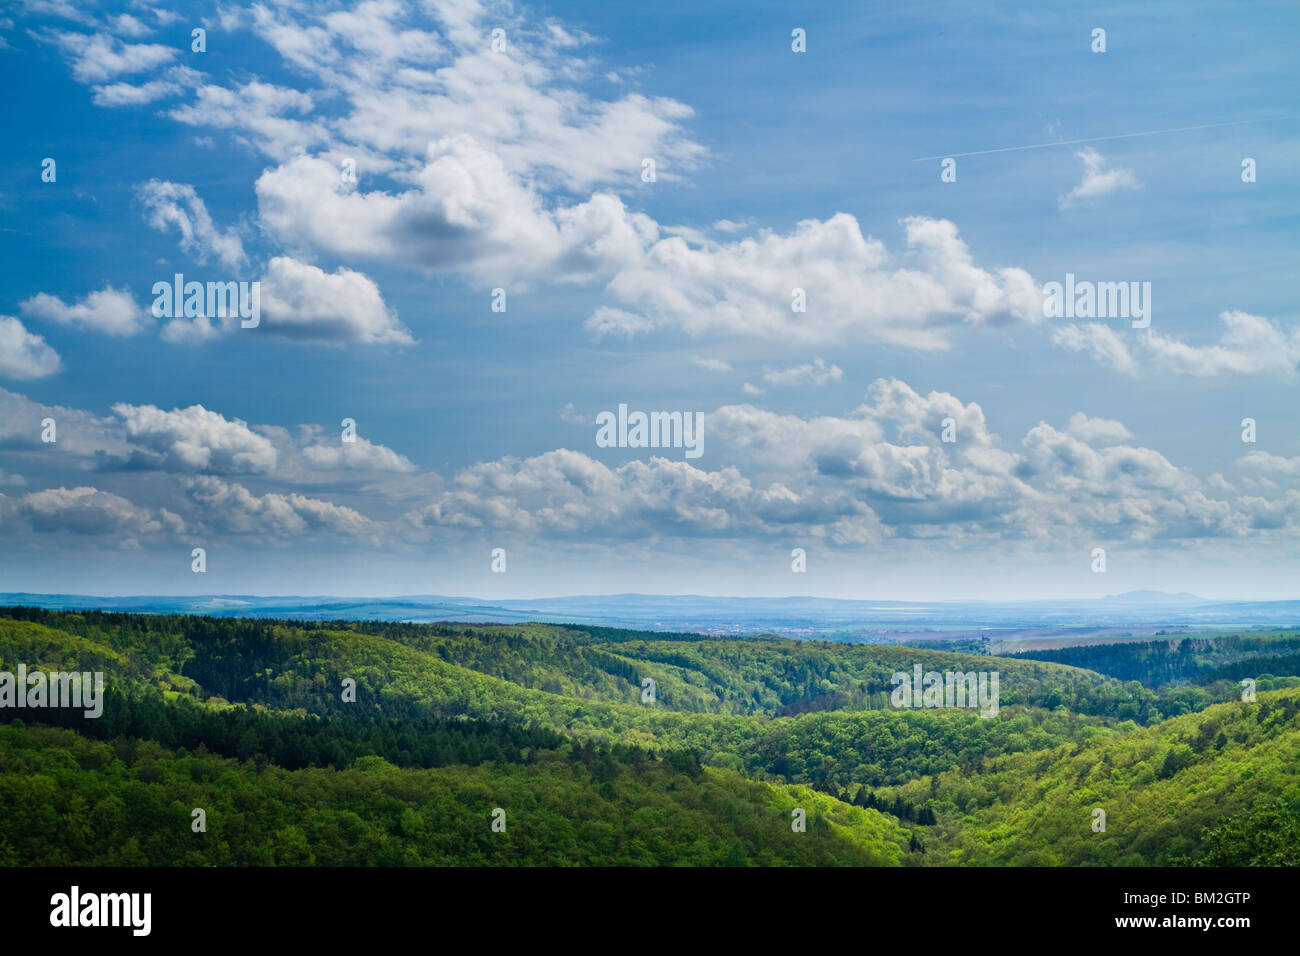 Spring hills with dominant sky - Stock Image